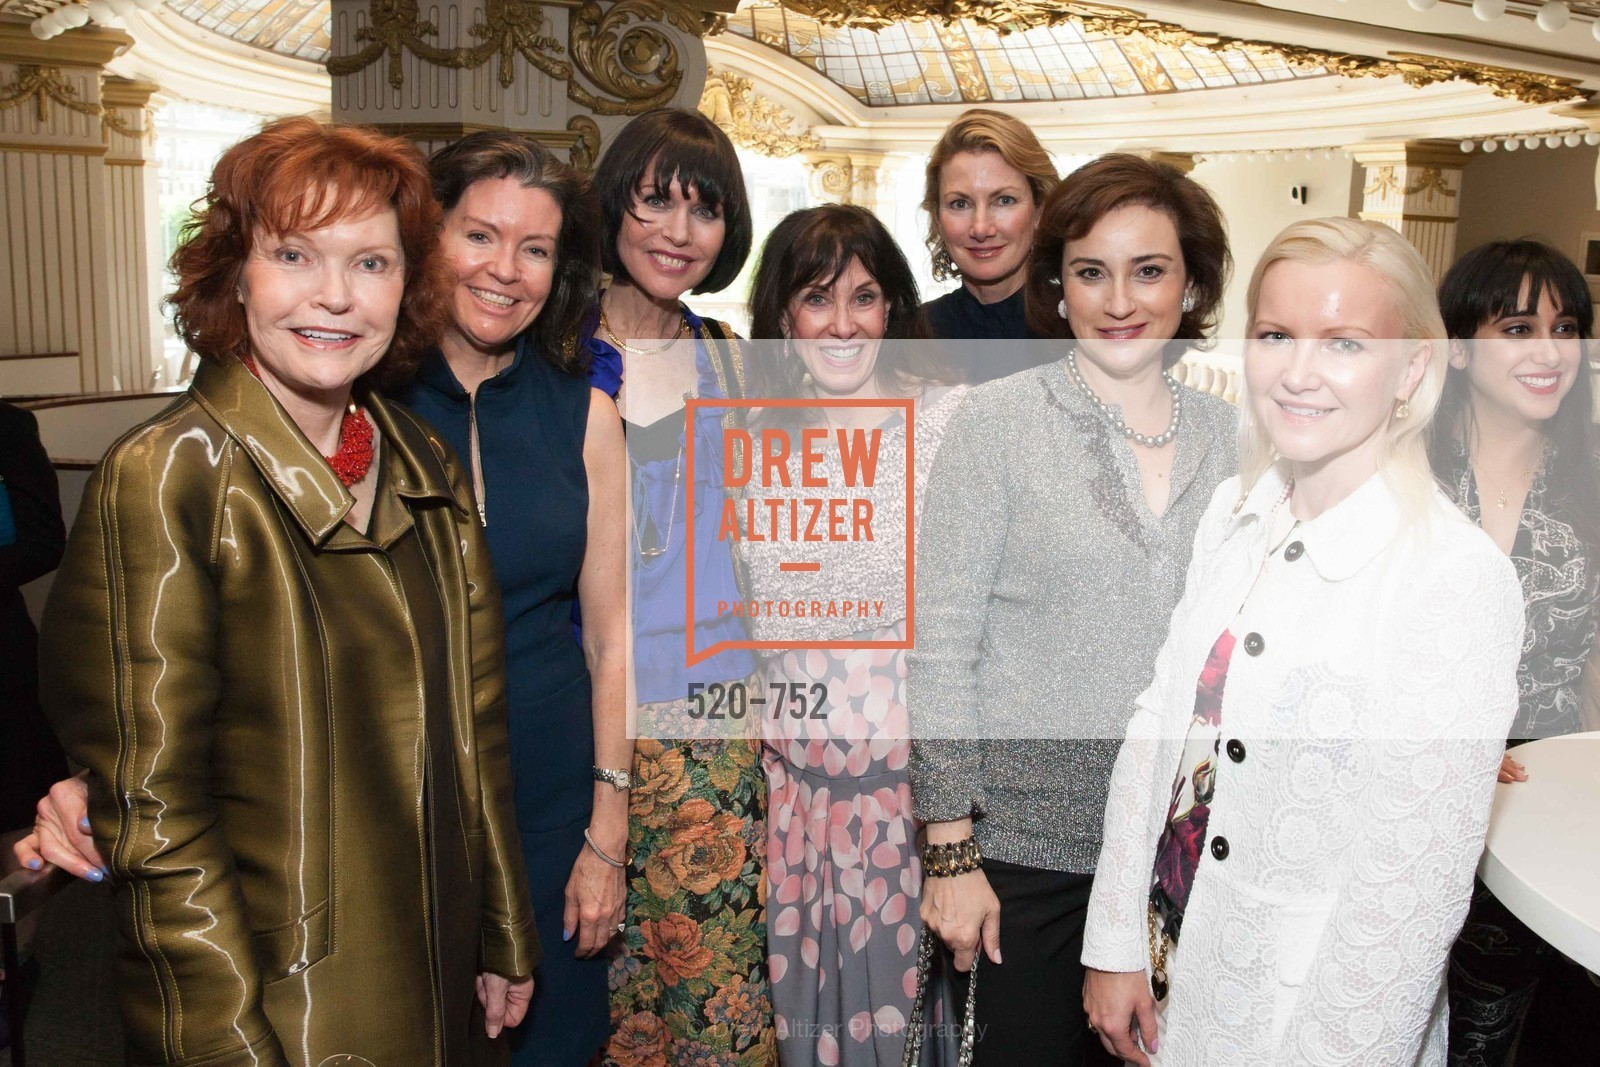 Marilyn Hayes, Elizabeth Birka-White, Christine Suppes, Jill Barnett, Shirley Parks, Dolly Chammas, Nathalie Delrue-McGuire, Electric Fashion Book Signing with Christine Suppes & Ken Downing at THE ROTUNDA, NEIMAN MARCUS, US, May 27th, 2015,Drew Altizer, Drew Altizer Photography, full-service agency, private events, San Francisco photographer, photographer california